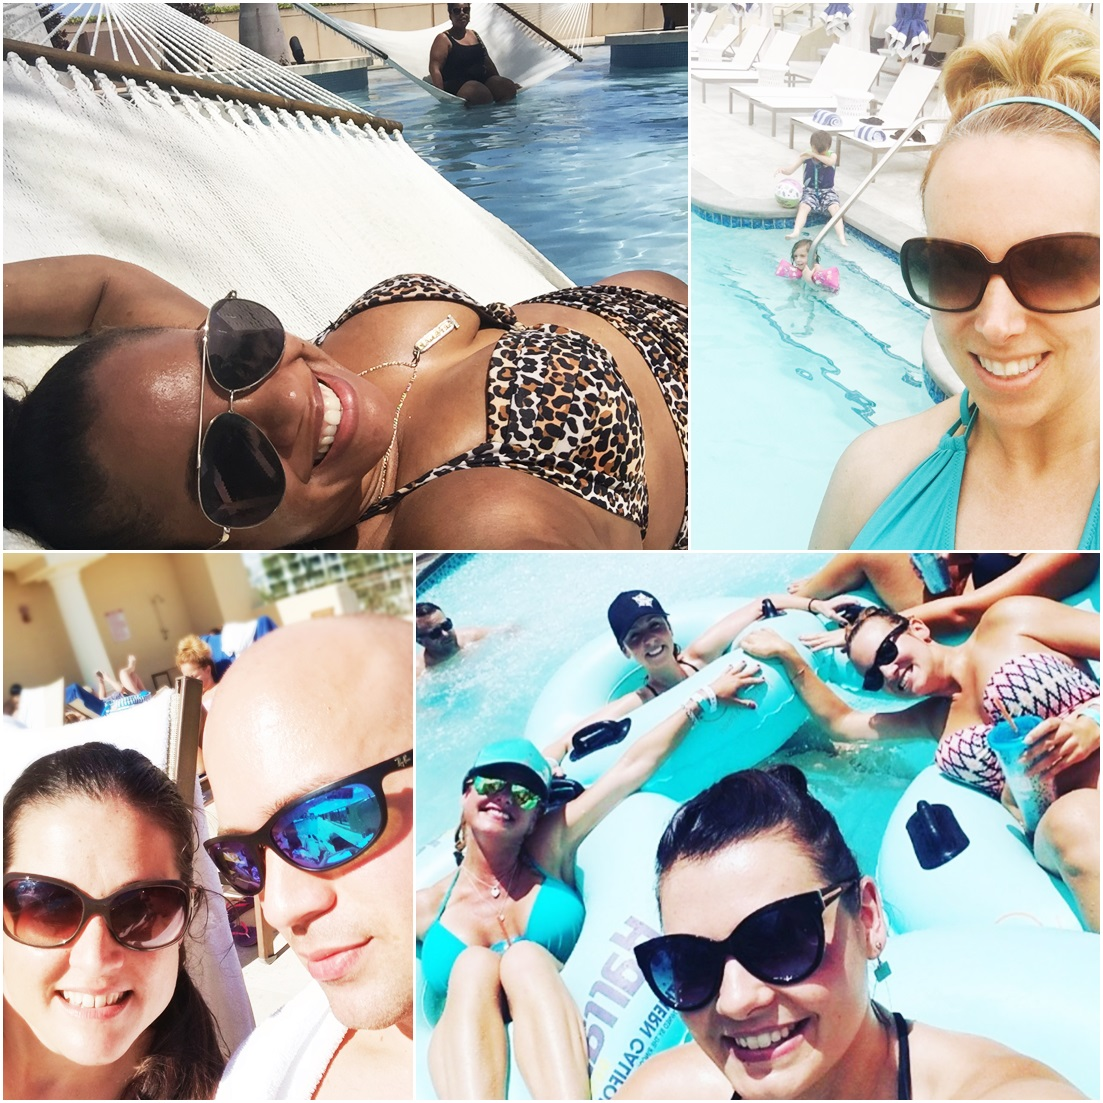 Pool Selfies - National Selfie Day